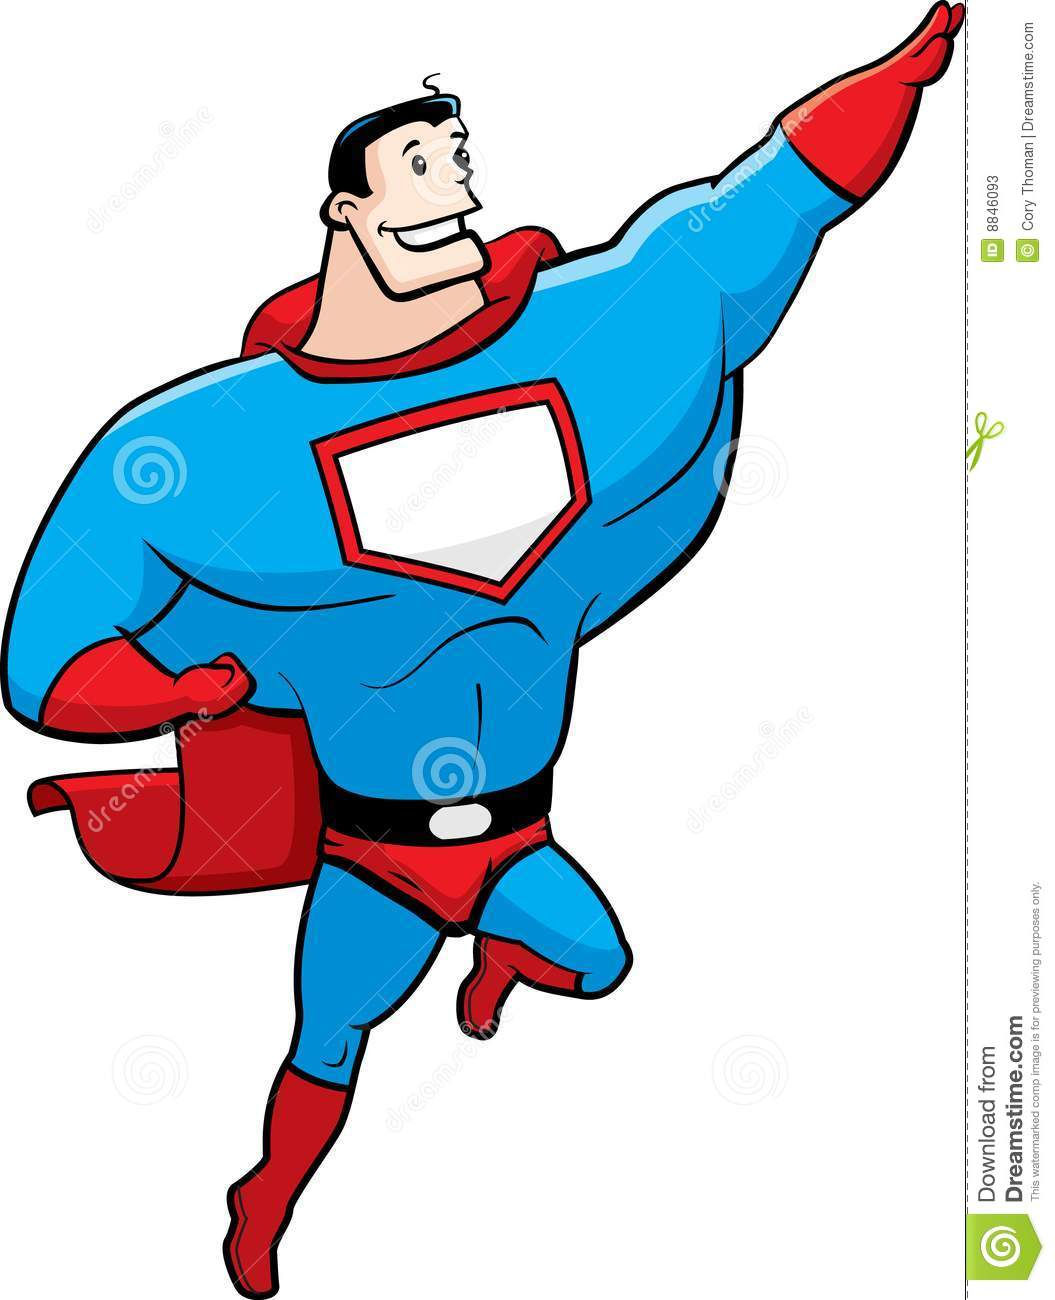 Superhero Stock Photos  Image: 8846093